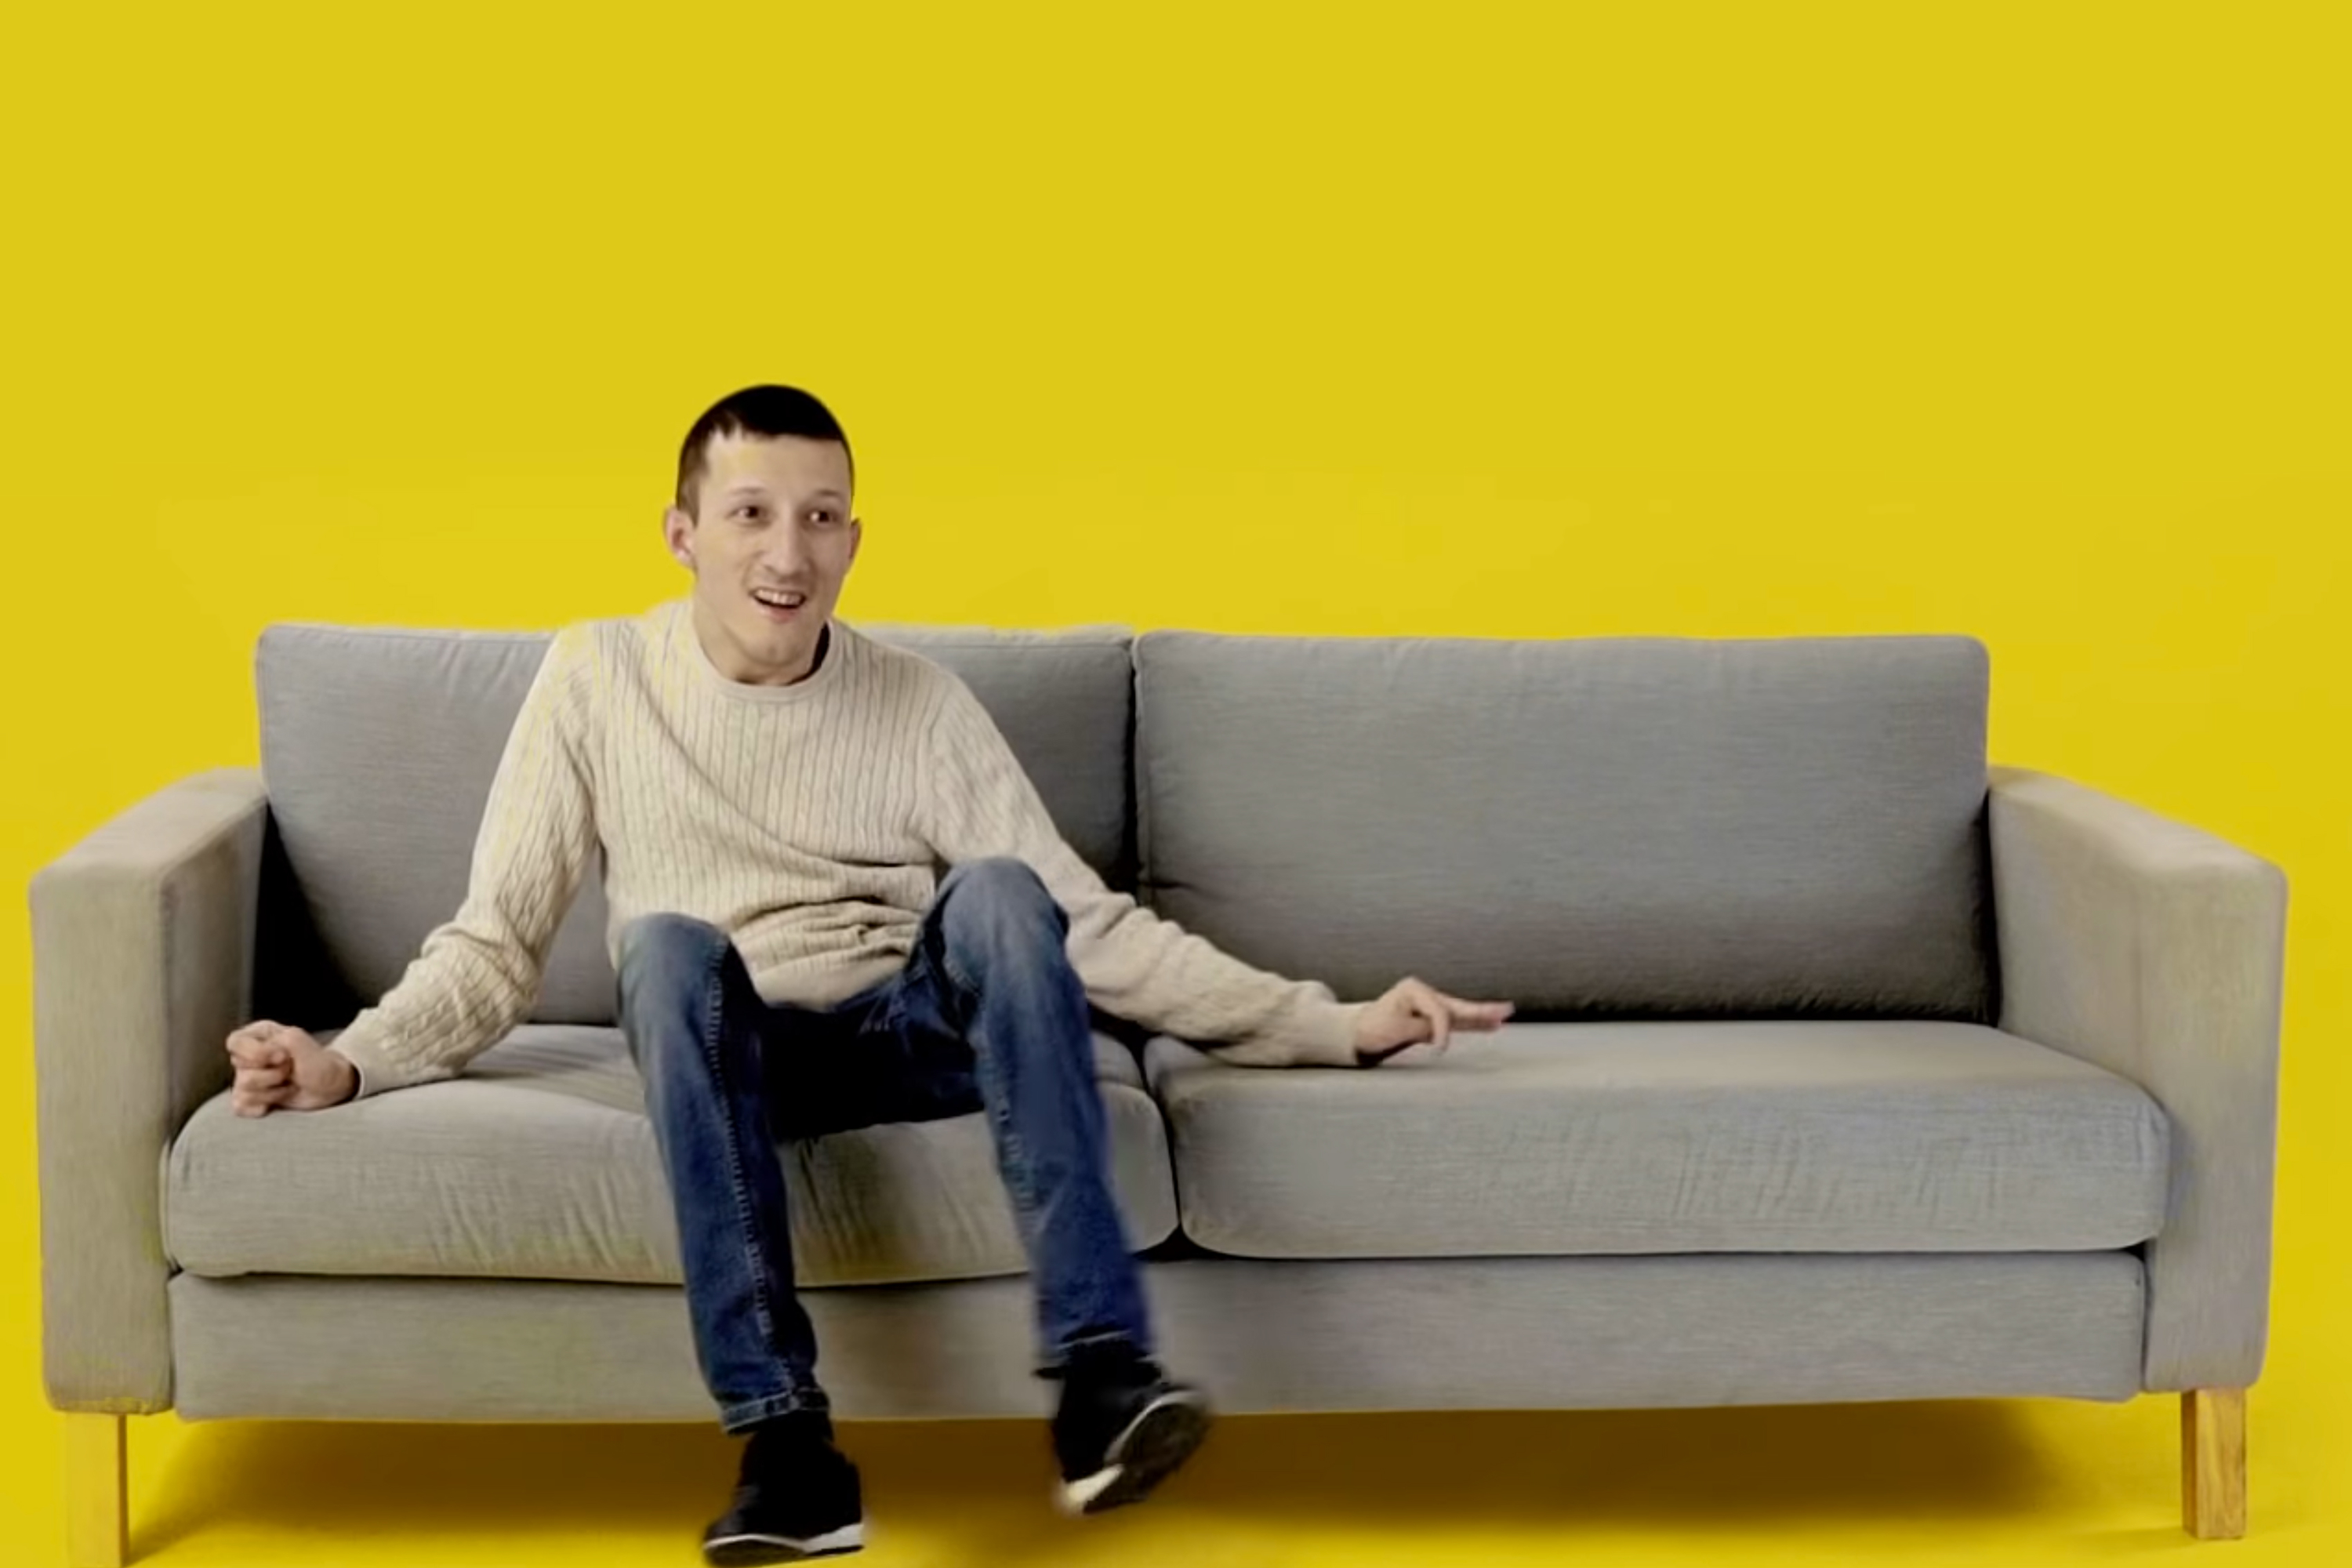 Ikea: 'ThisAbles'